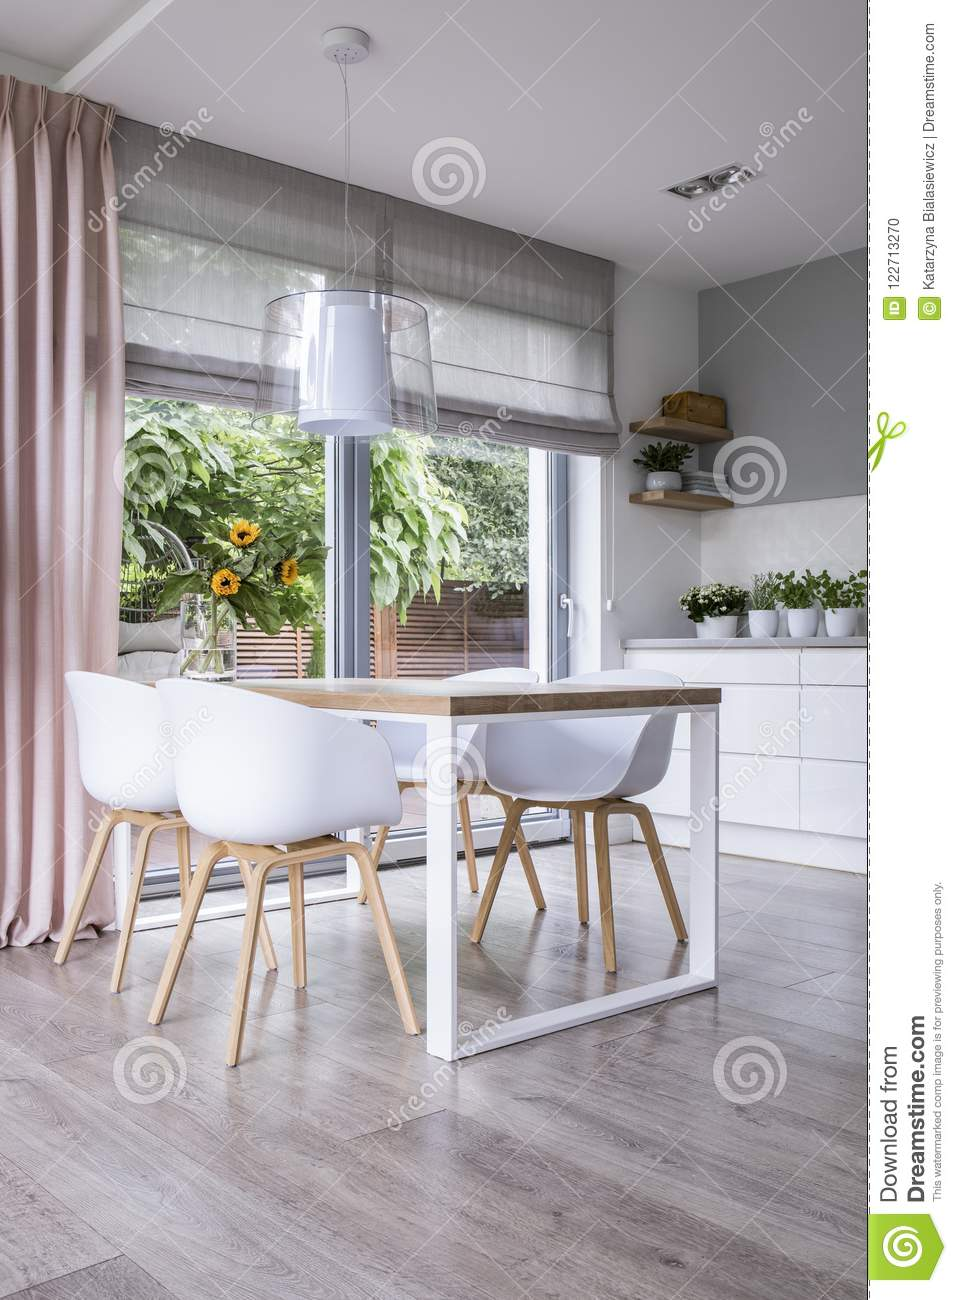 Lamp Above Wooden Table And White Chairs In Dining Room Interior With Drapes Window